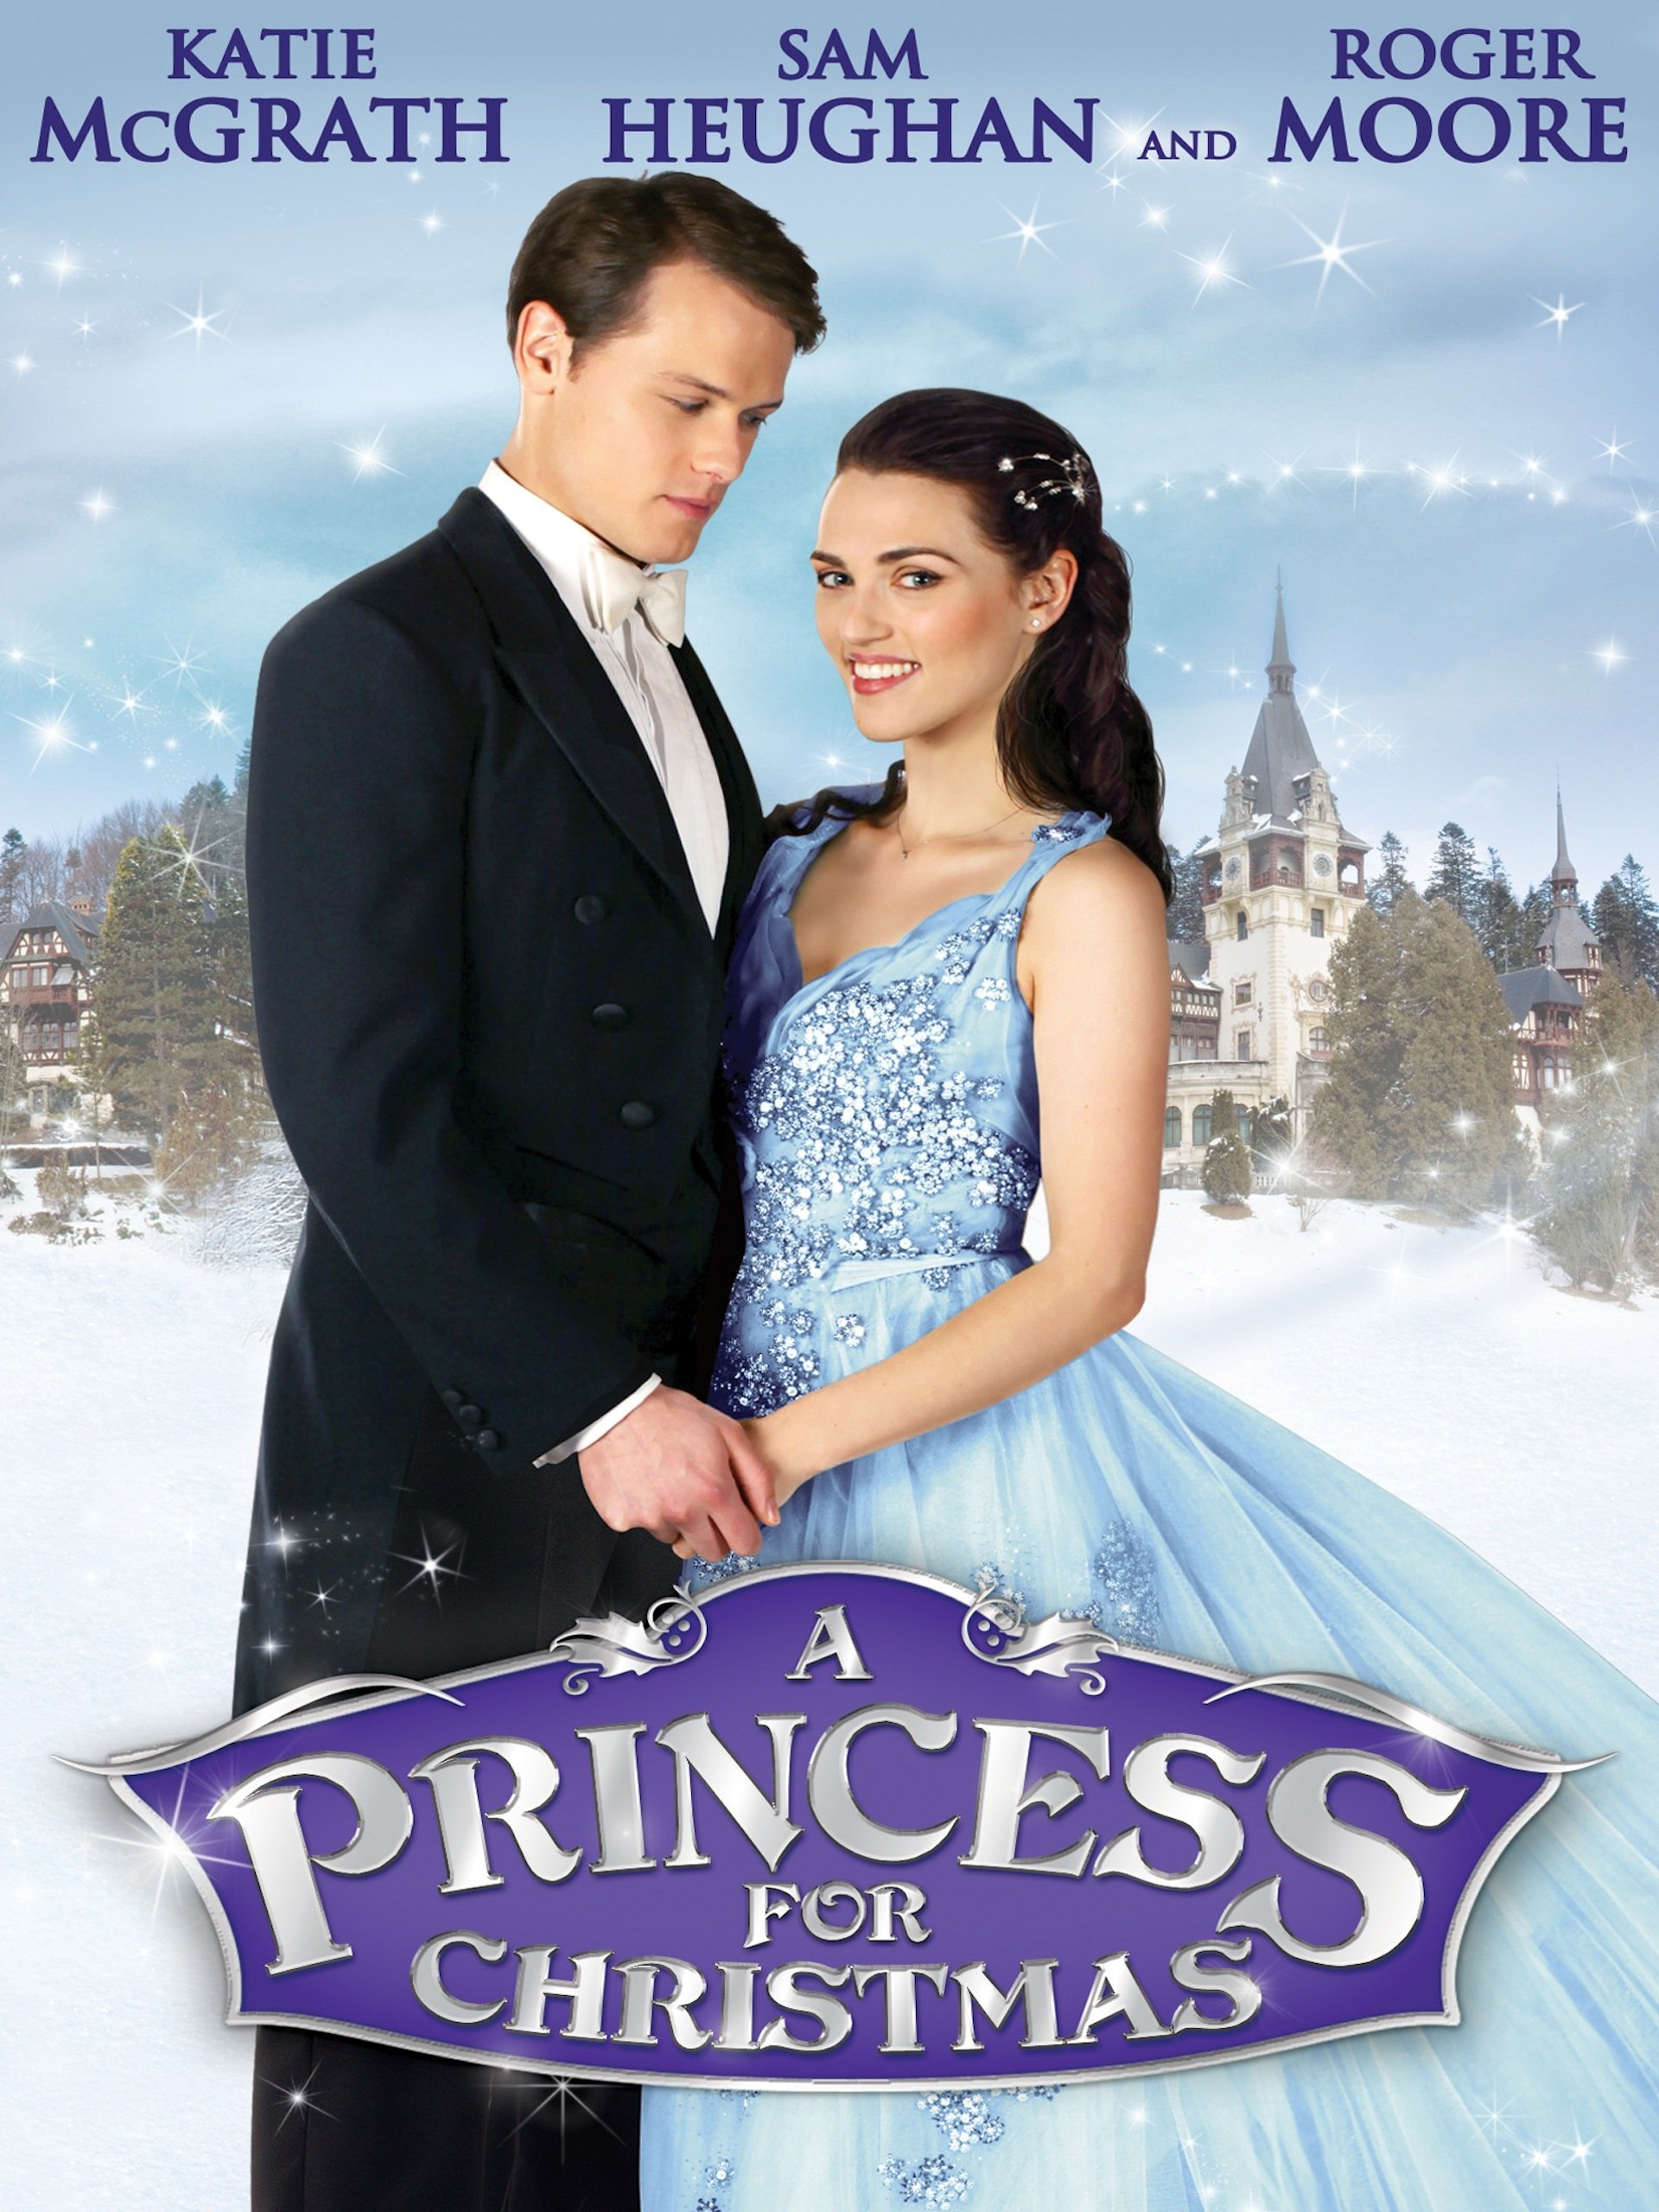 A Princess For Christmas Poster.Amazon Com Watch A Princess For Christmas Prime Video